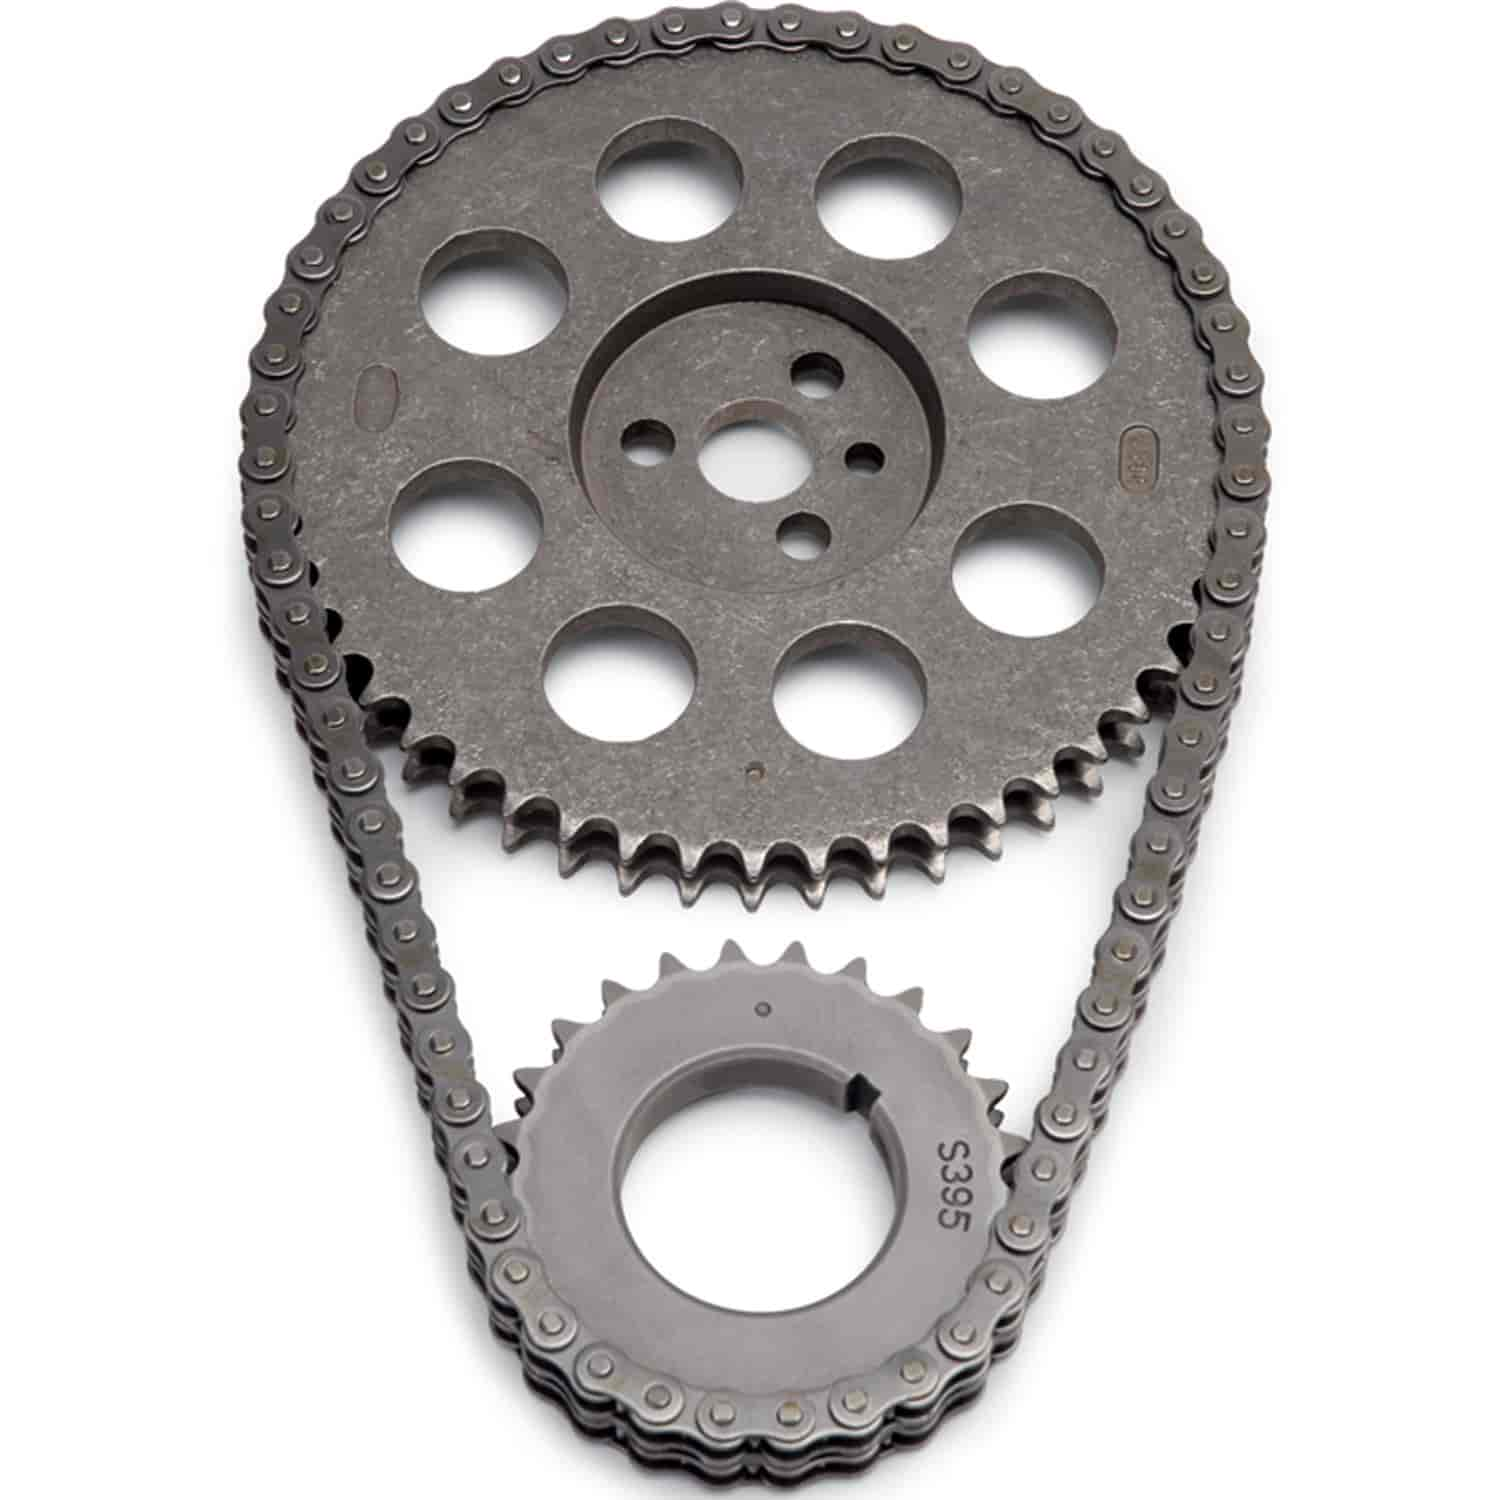 hight resolution of edelbrock stock replacement performer link timing chain set for 1965 1995 big block chevy 366 454 v8